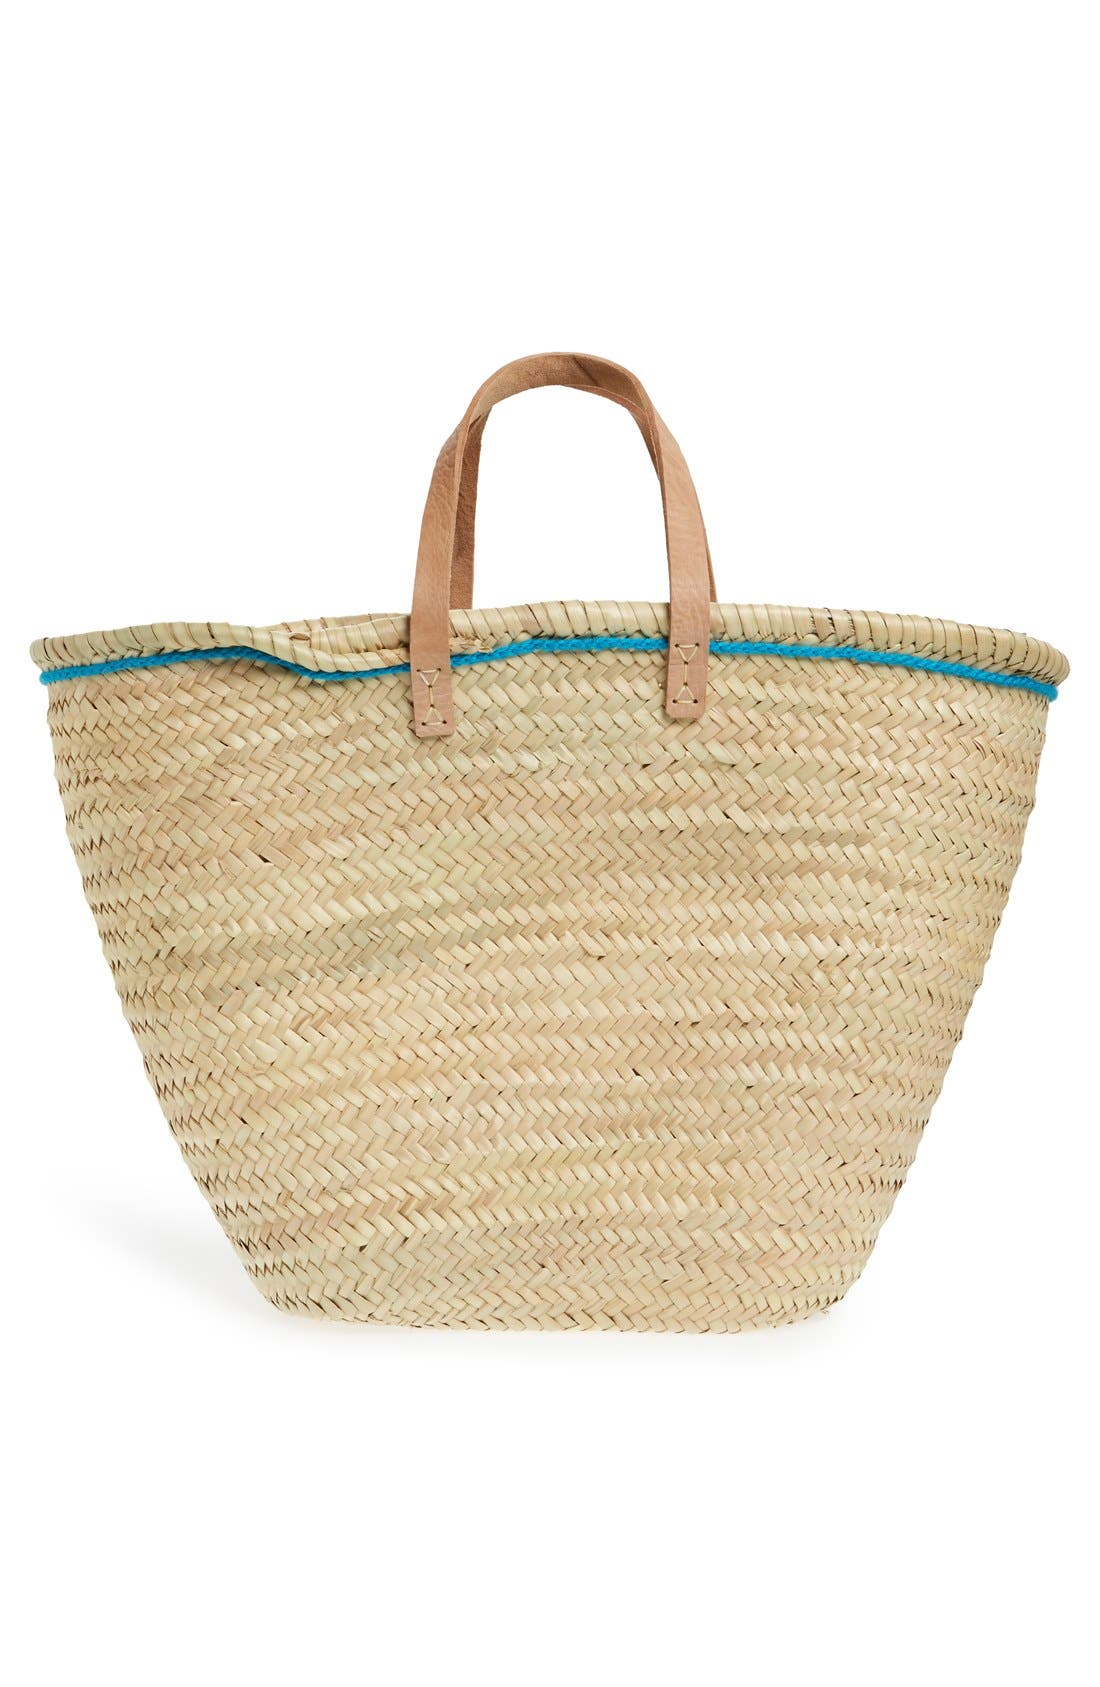 Alternate Image 3  - House of Perna 'Remy' Woven Straw Tote